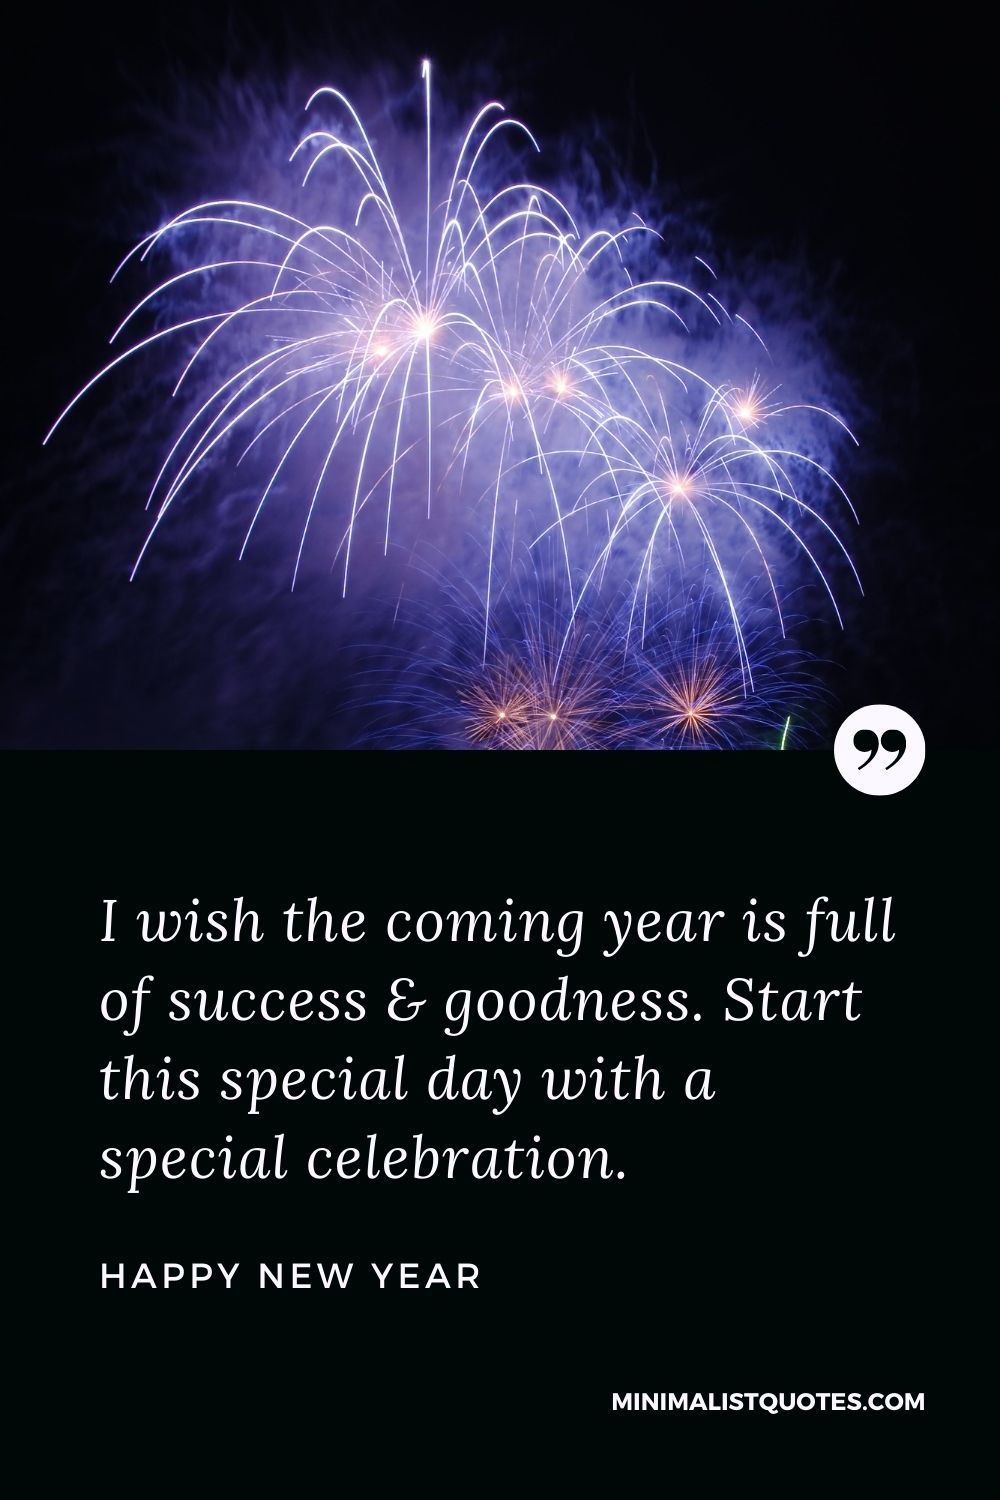 New Year Wish - I wish the coming year is full of success & goodness. Start this special day with a special celebration.